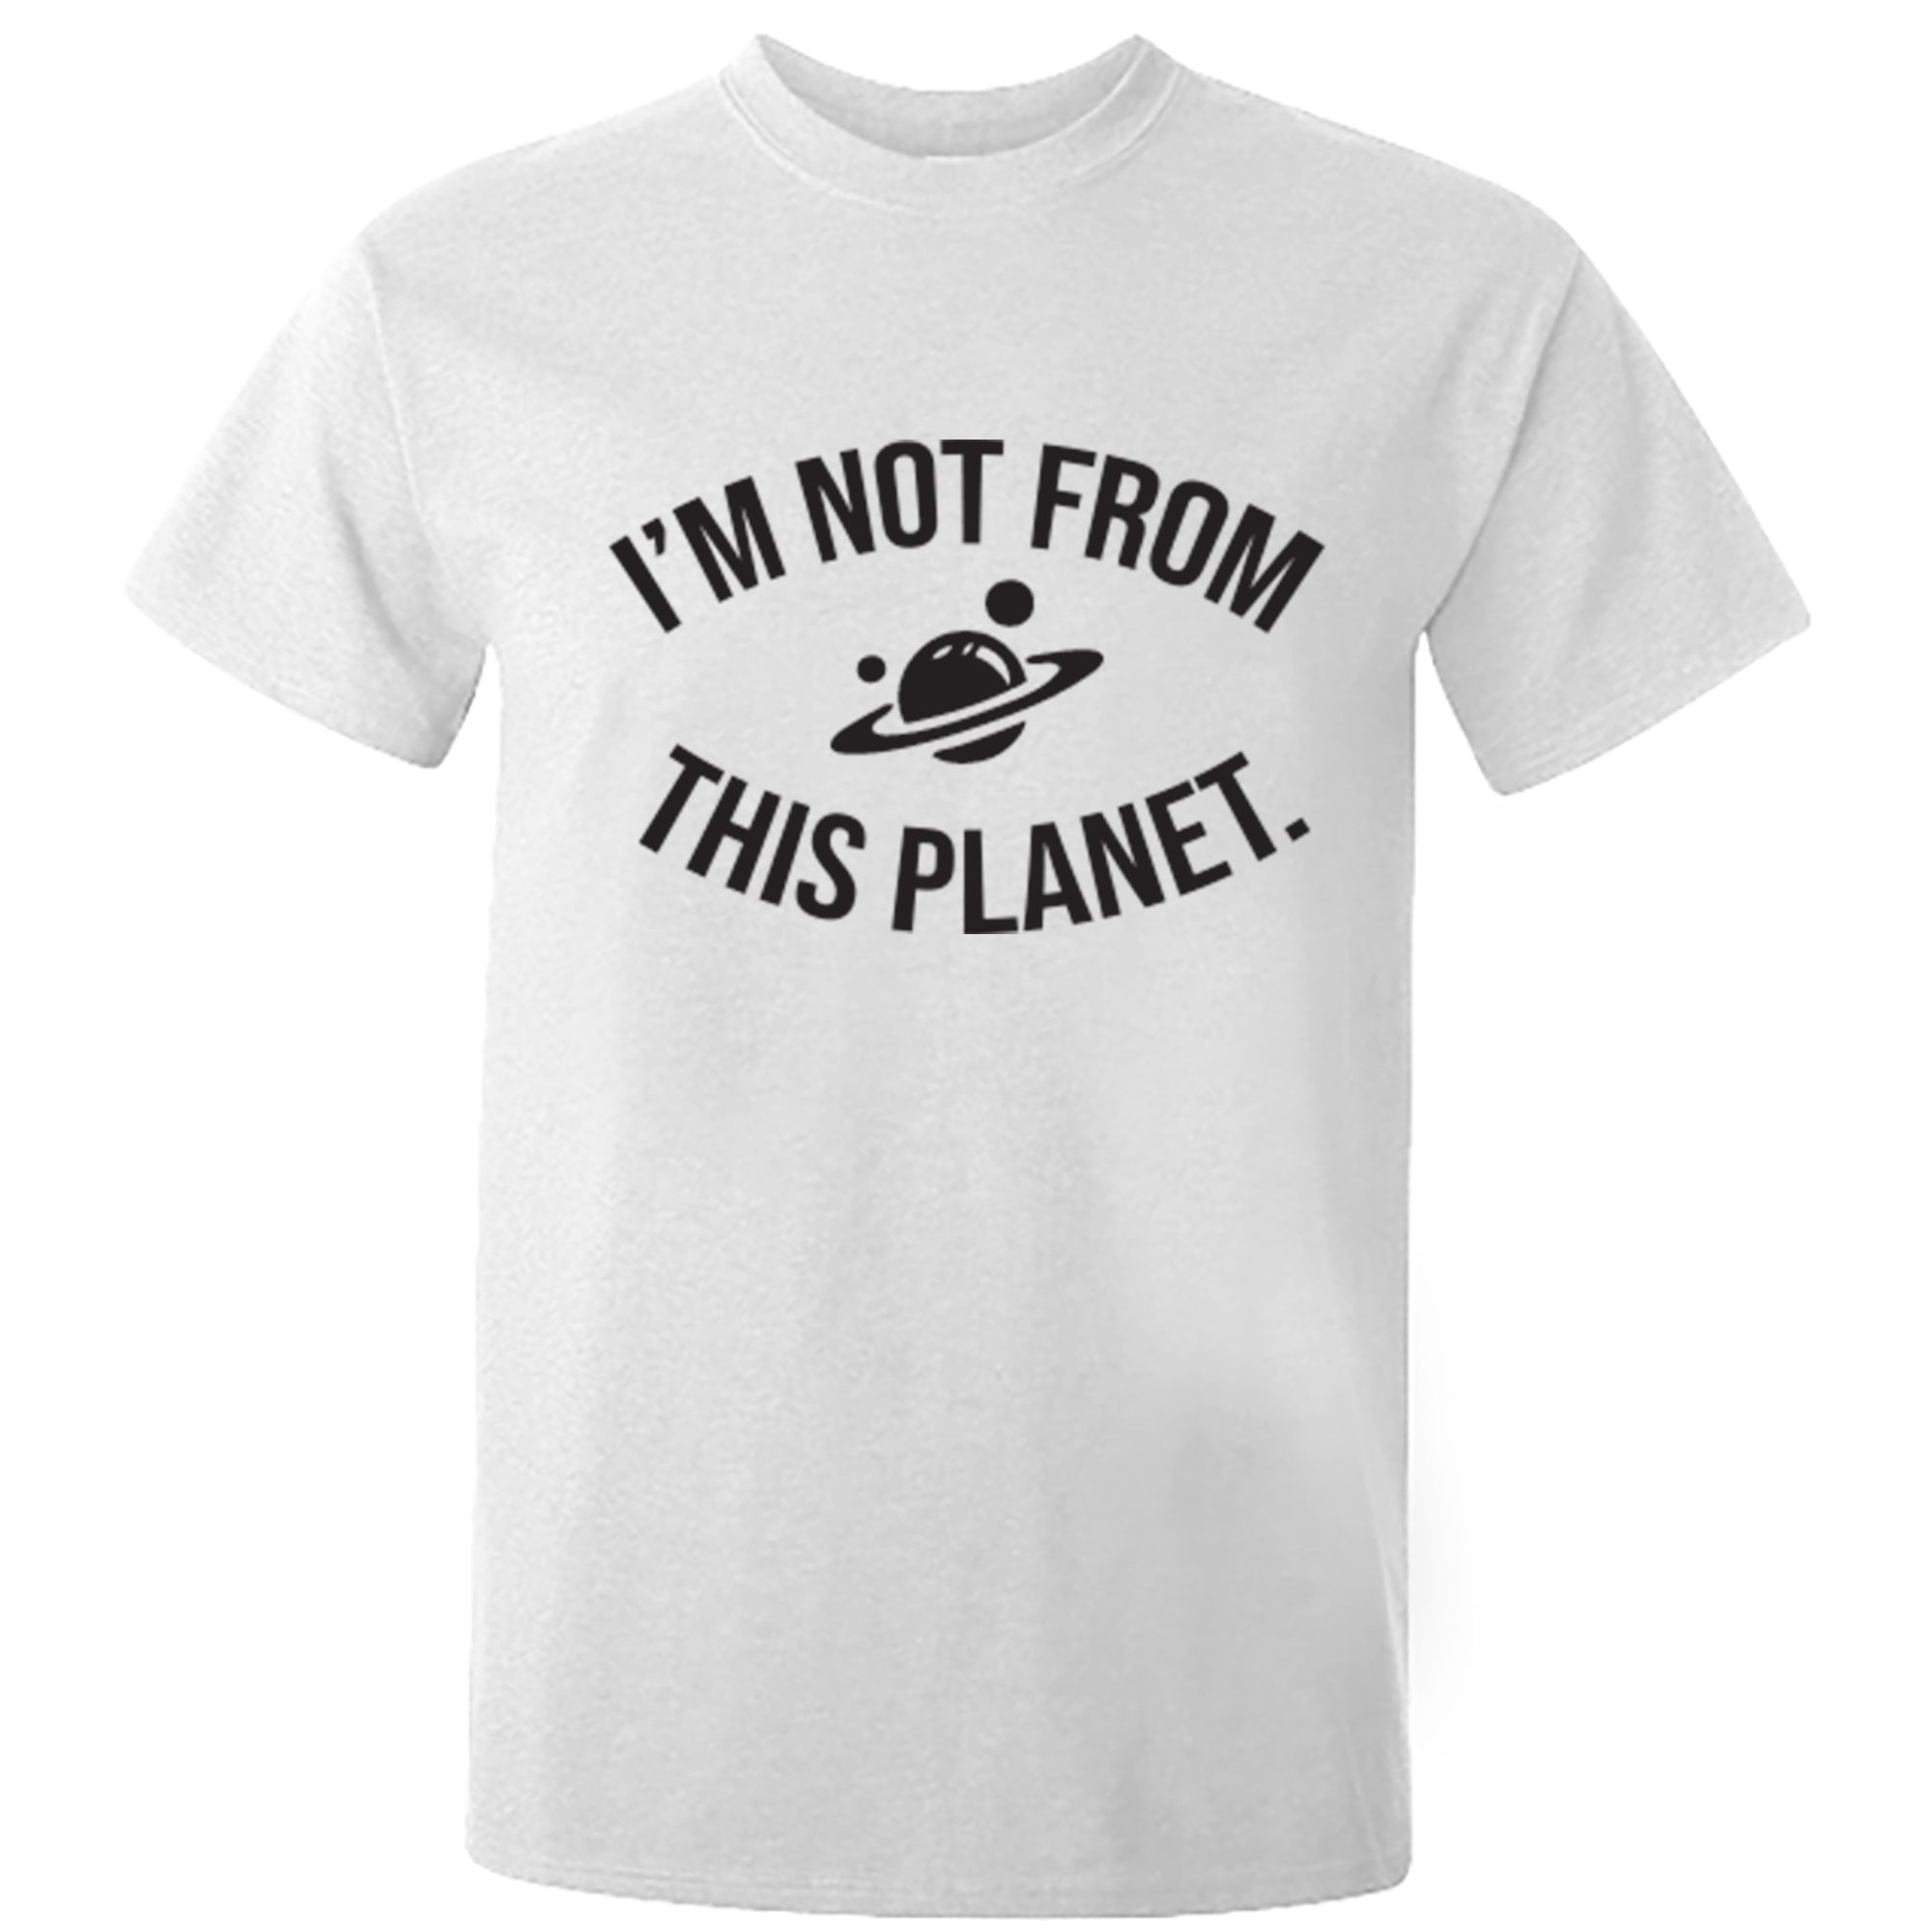 I'm Not From This Planet Unisex Fit T-Shirt S0430 - Illustrated Identity Ltd.